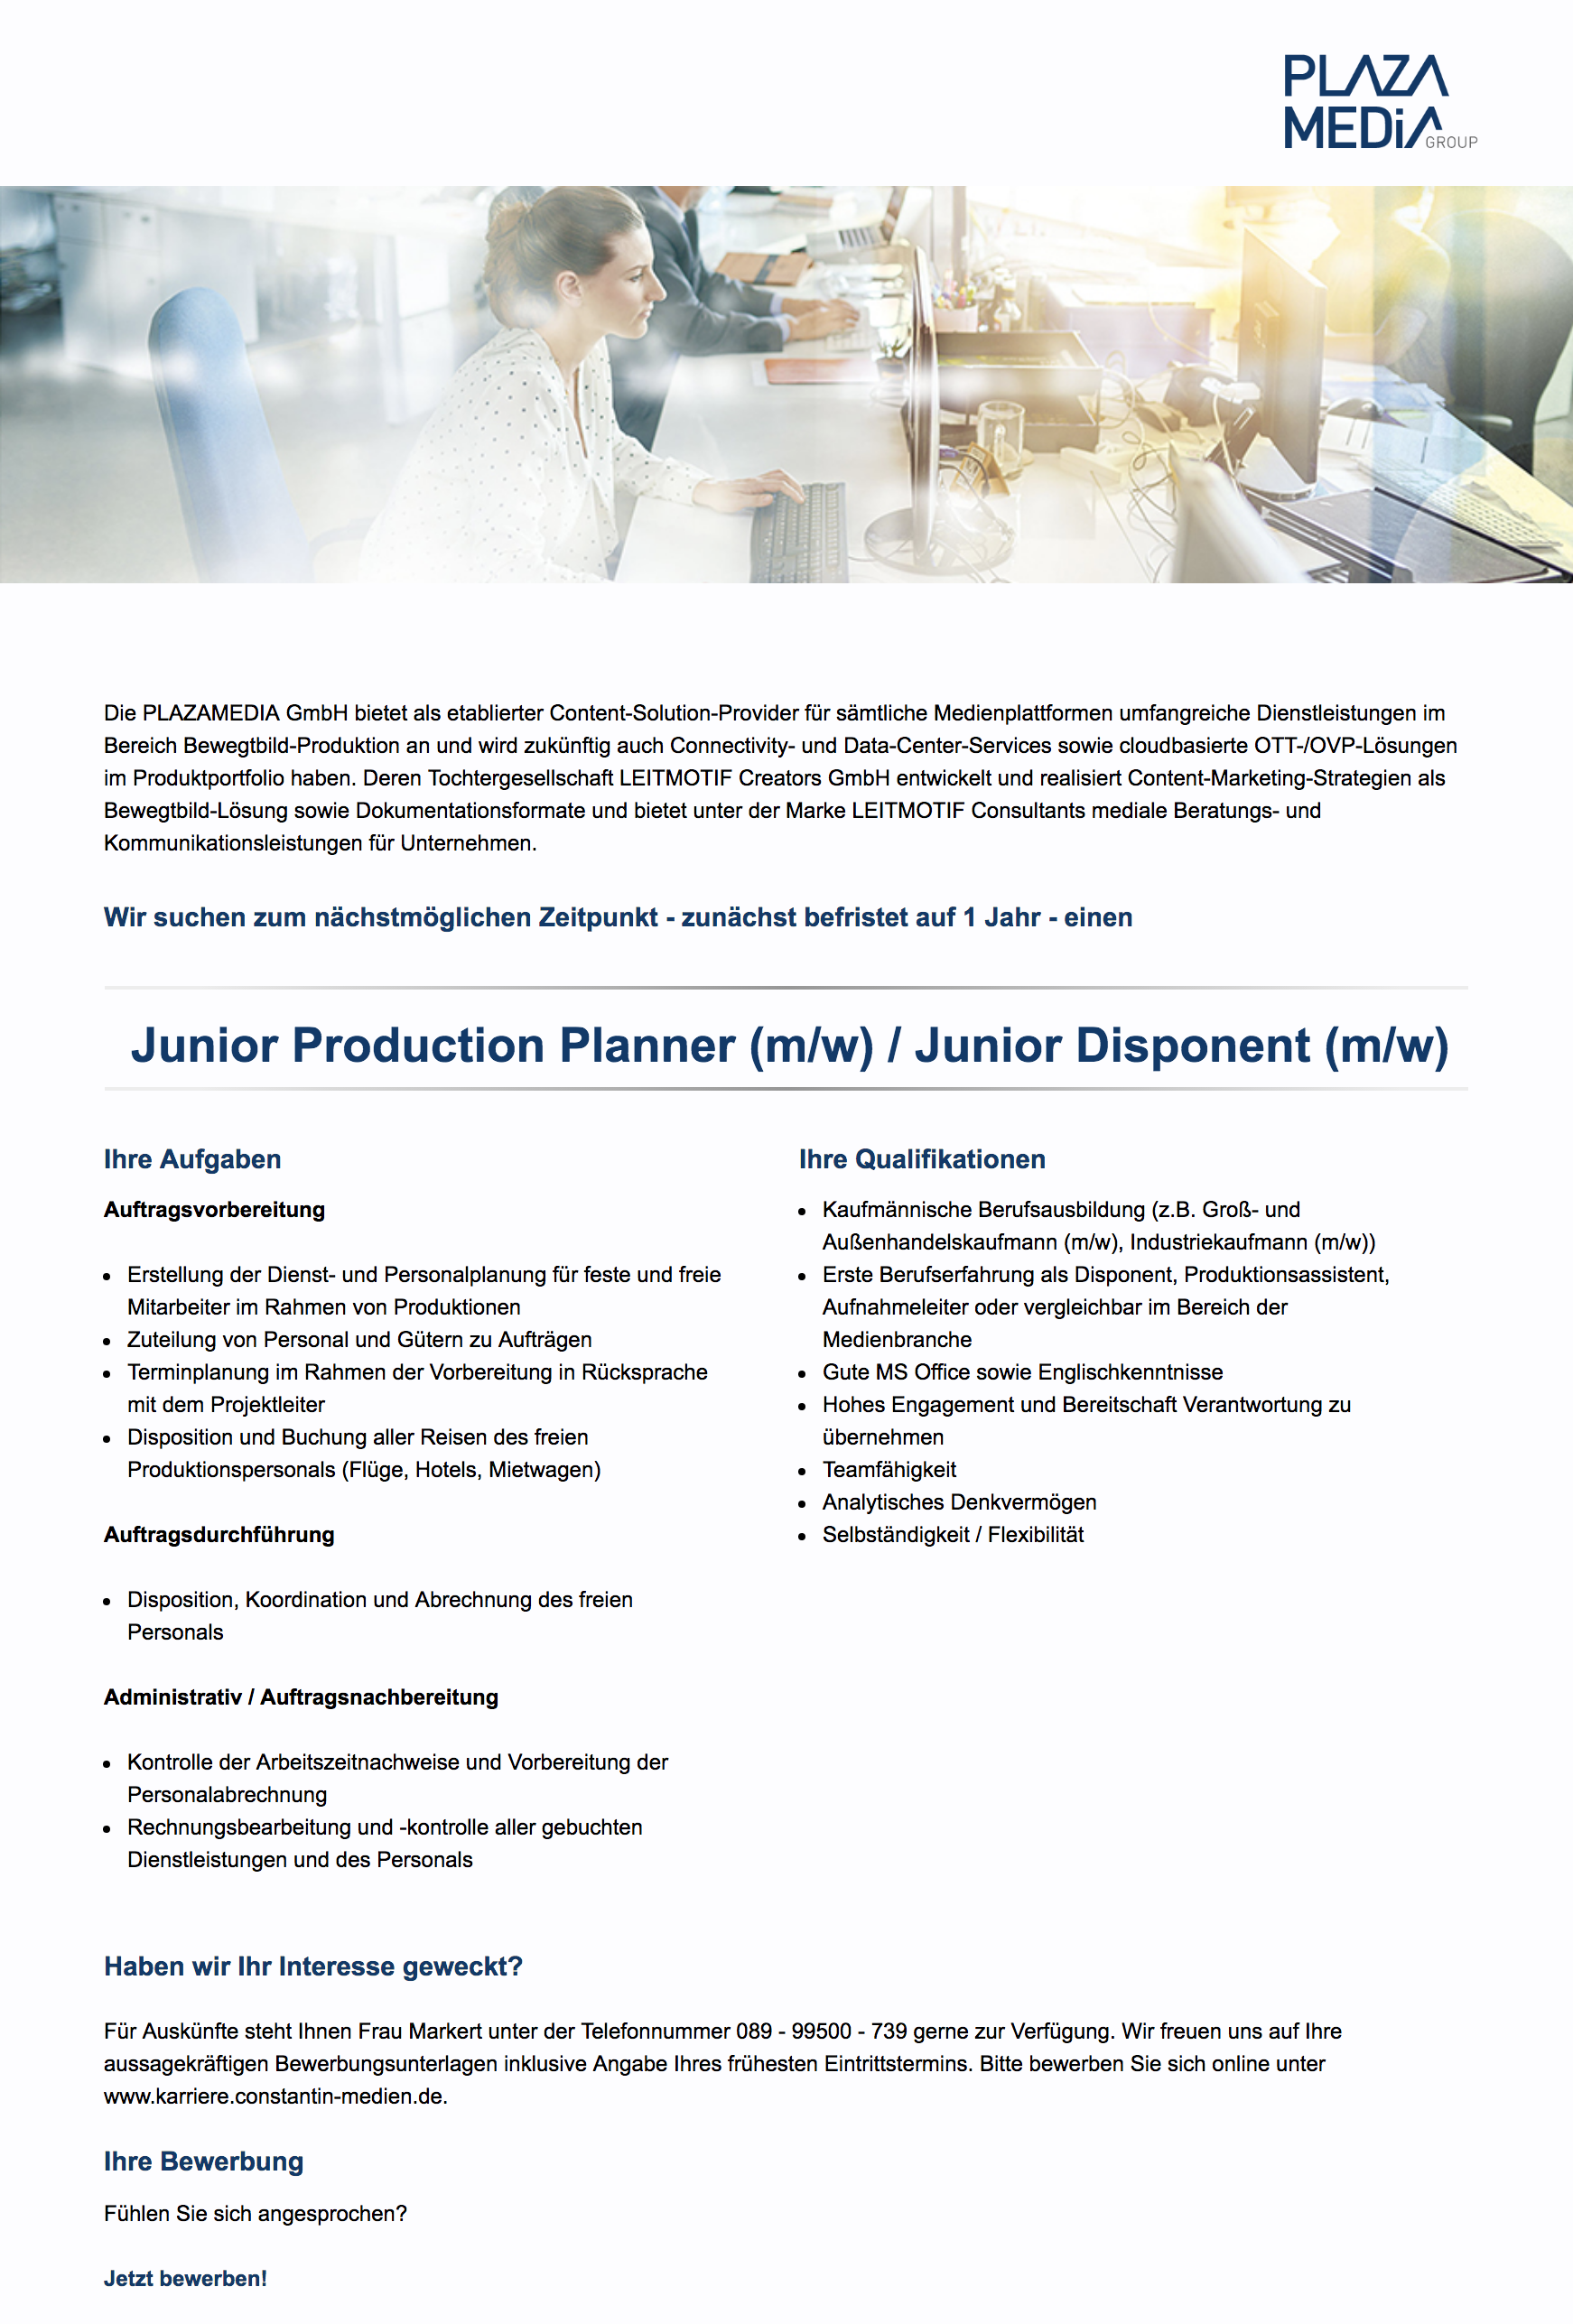 Junior Production Planner (m/w) / Junior Disponent (m/w)